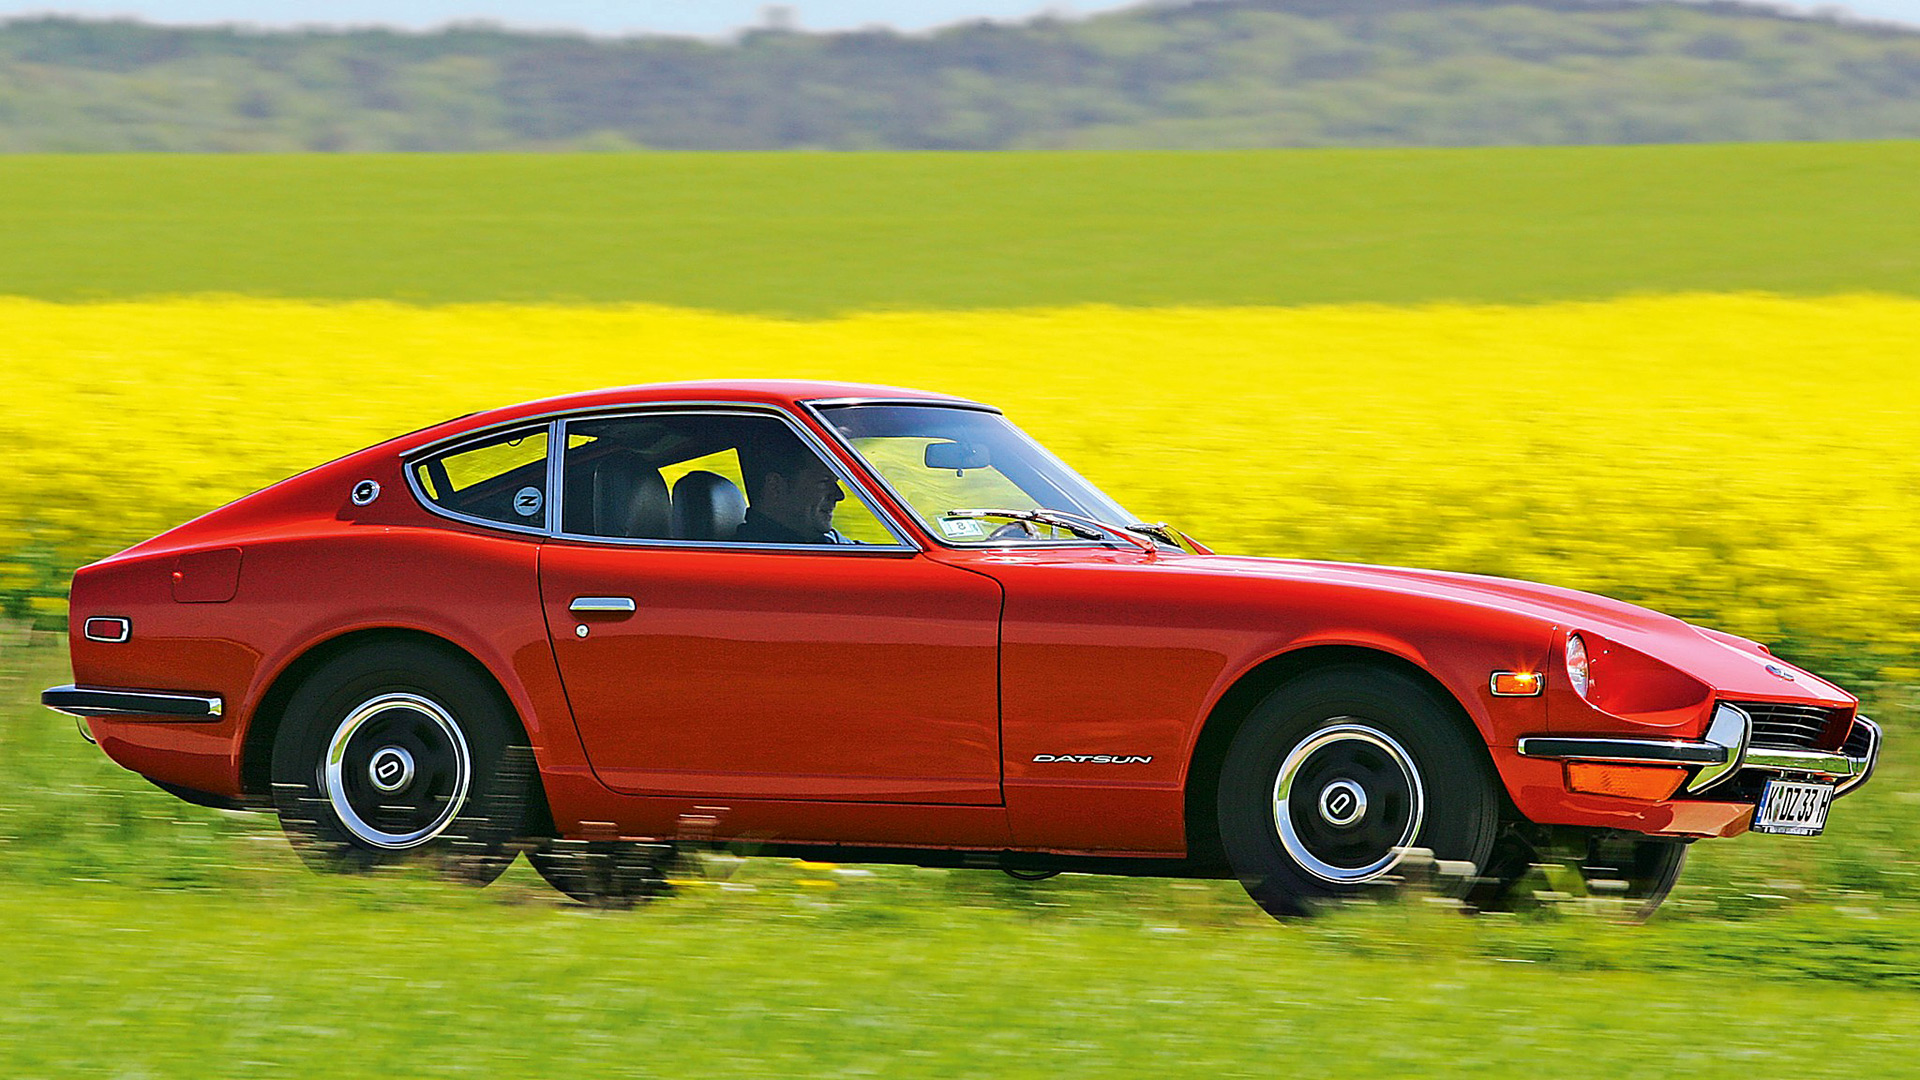 1920x1080 - Datsun Wallpapers 32